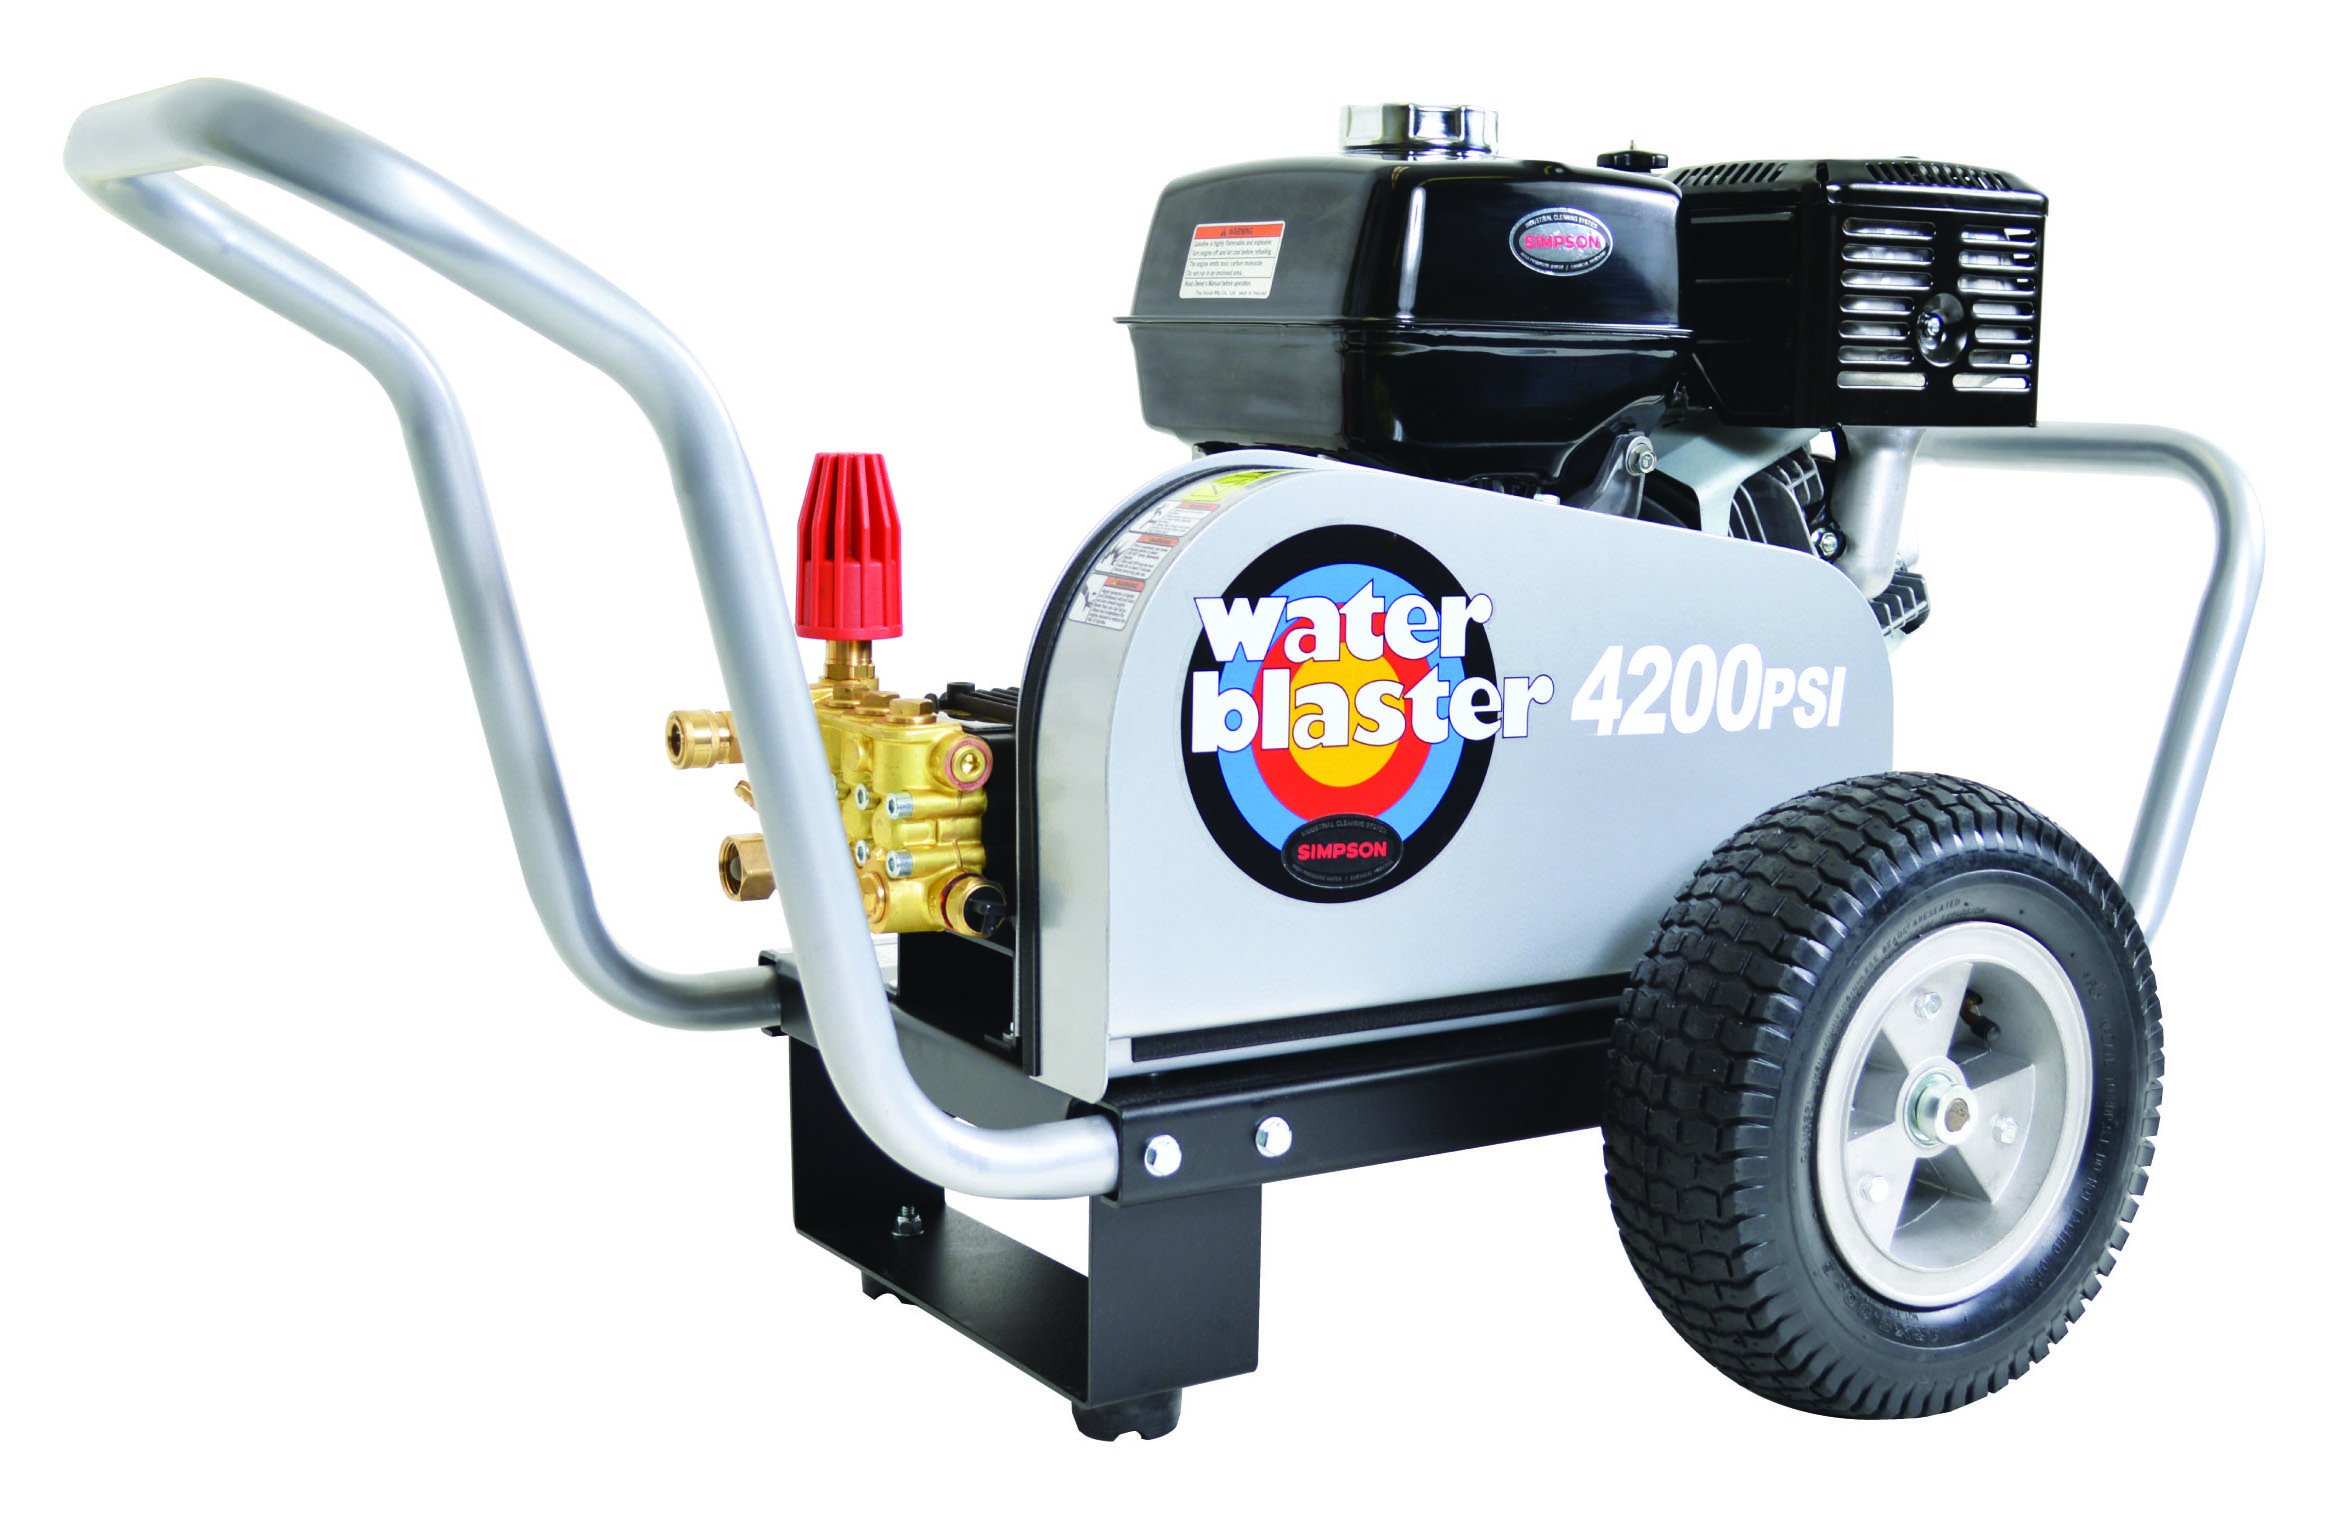 Simpson Water Blaster Commercial Gas Powered Pressure Washer 4200 PSI 3.5 GPM